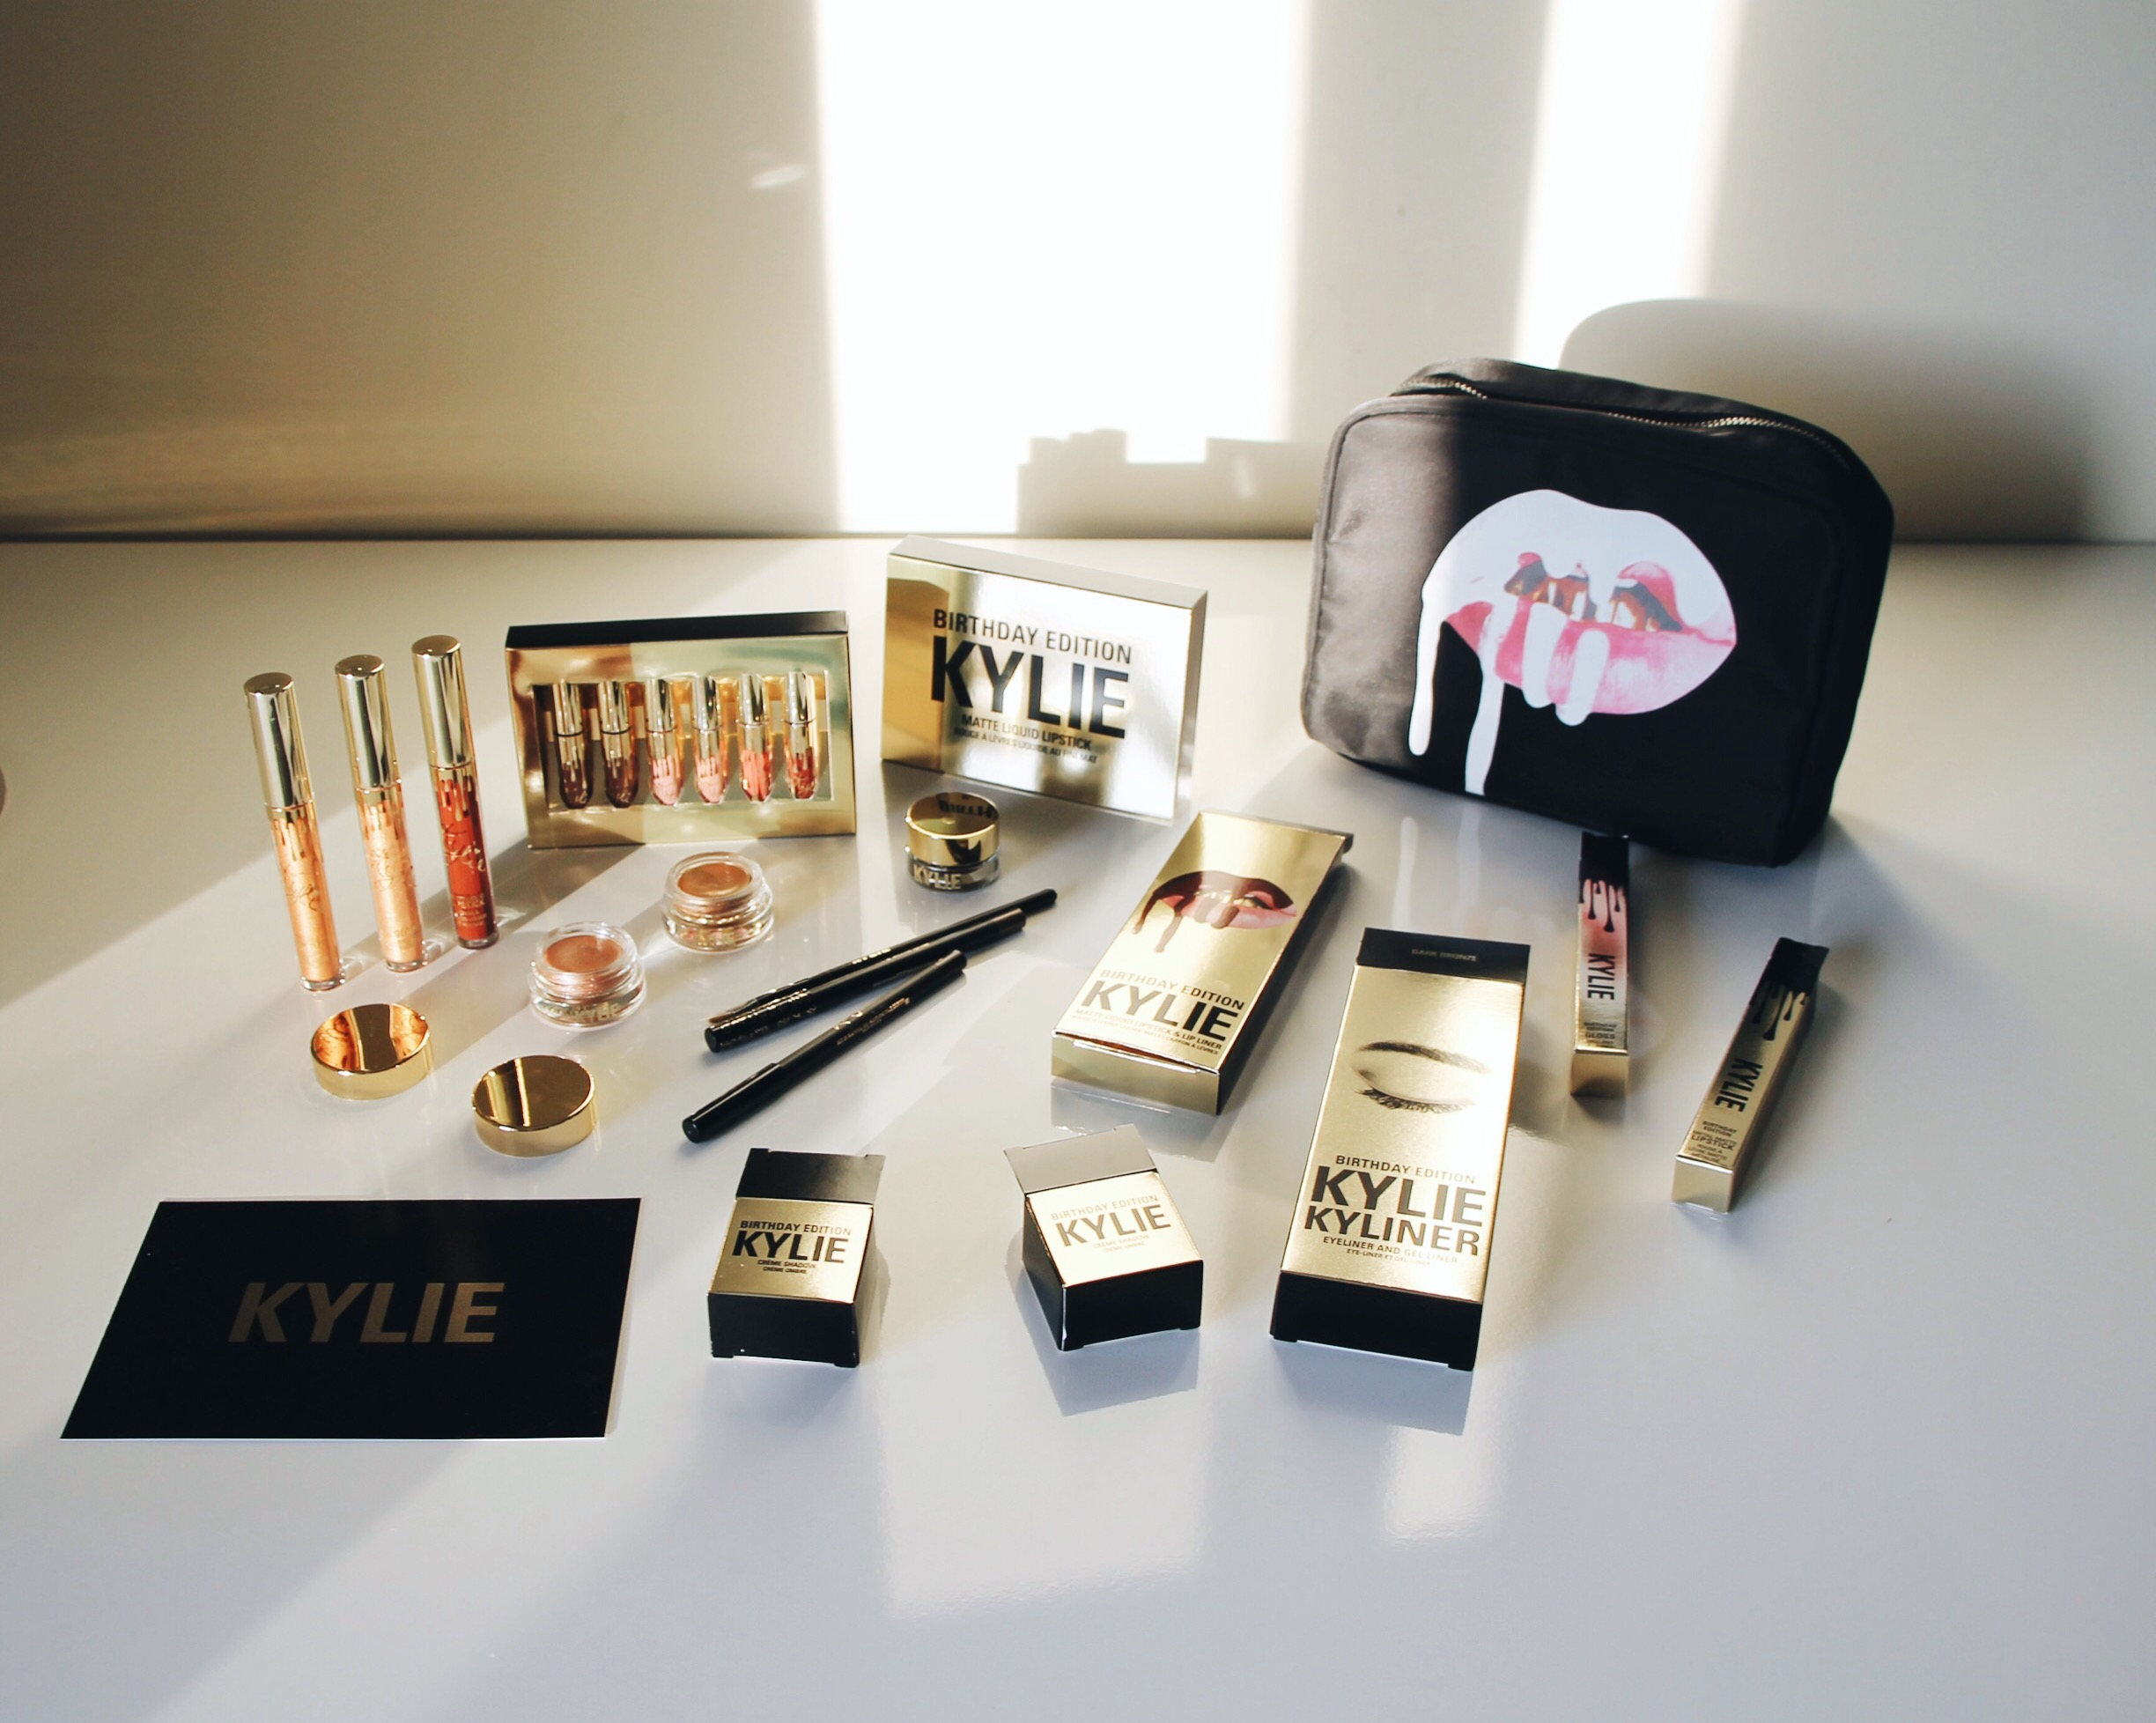 Kylie Cosmetics Birthday Collection, Kylie Cosmetics, Kylie Lipkit, Kylie Jenner, Kylie Cosmetics Mini Mattes, Kylie Cosmetics Mini Matte Kit, Leo Lip Kit, Poppin Gloss, Lord Metal Matte, Kylie Cosmetics Cream Shadows, Bronze Kyliner